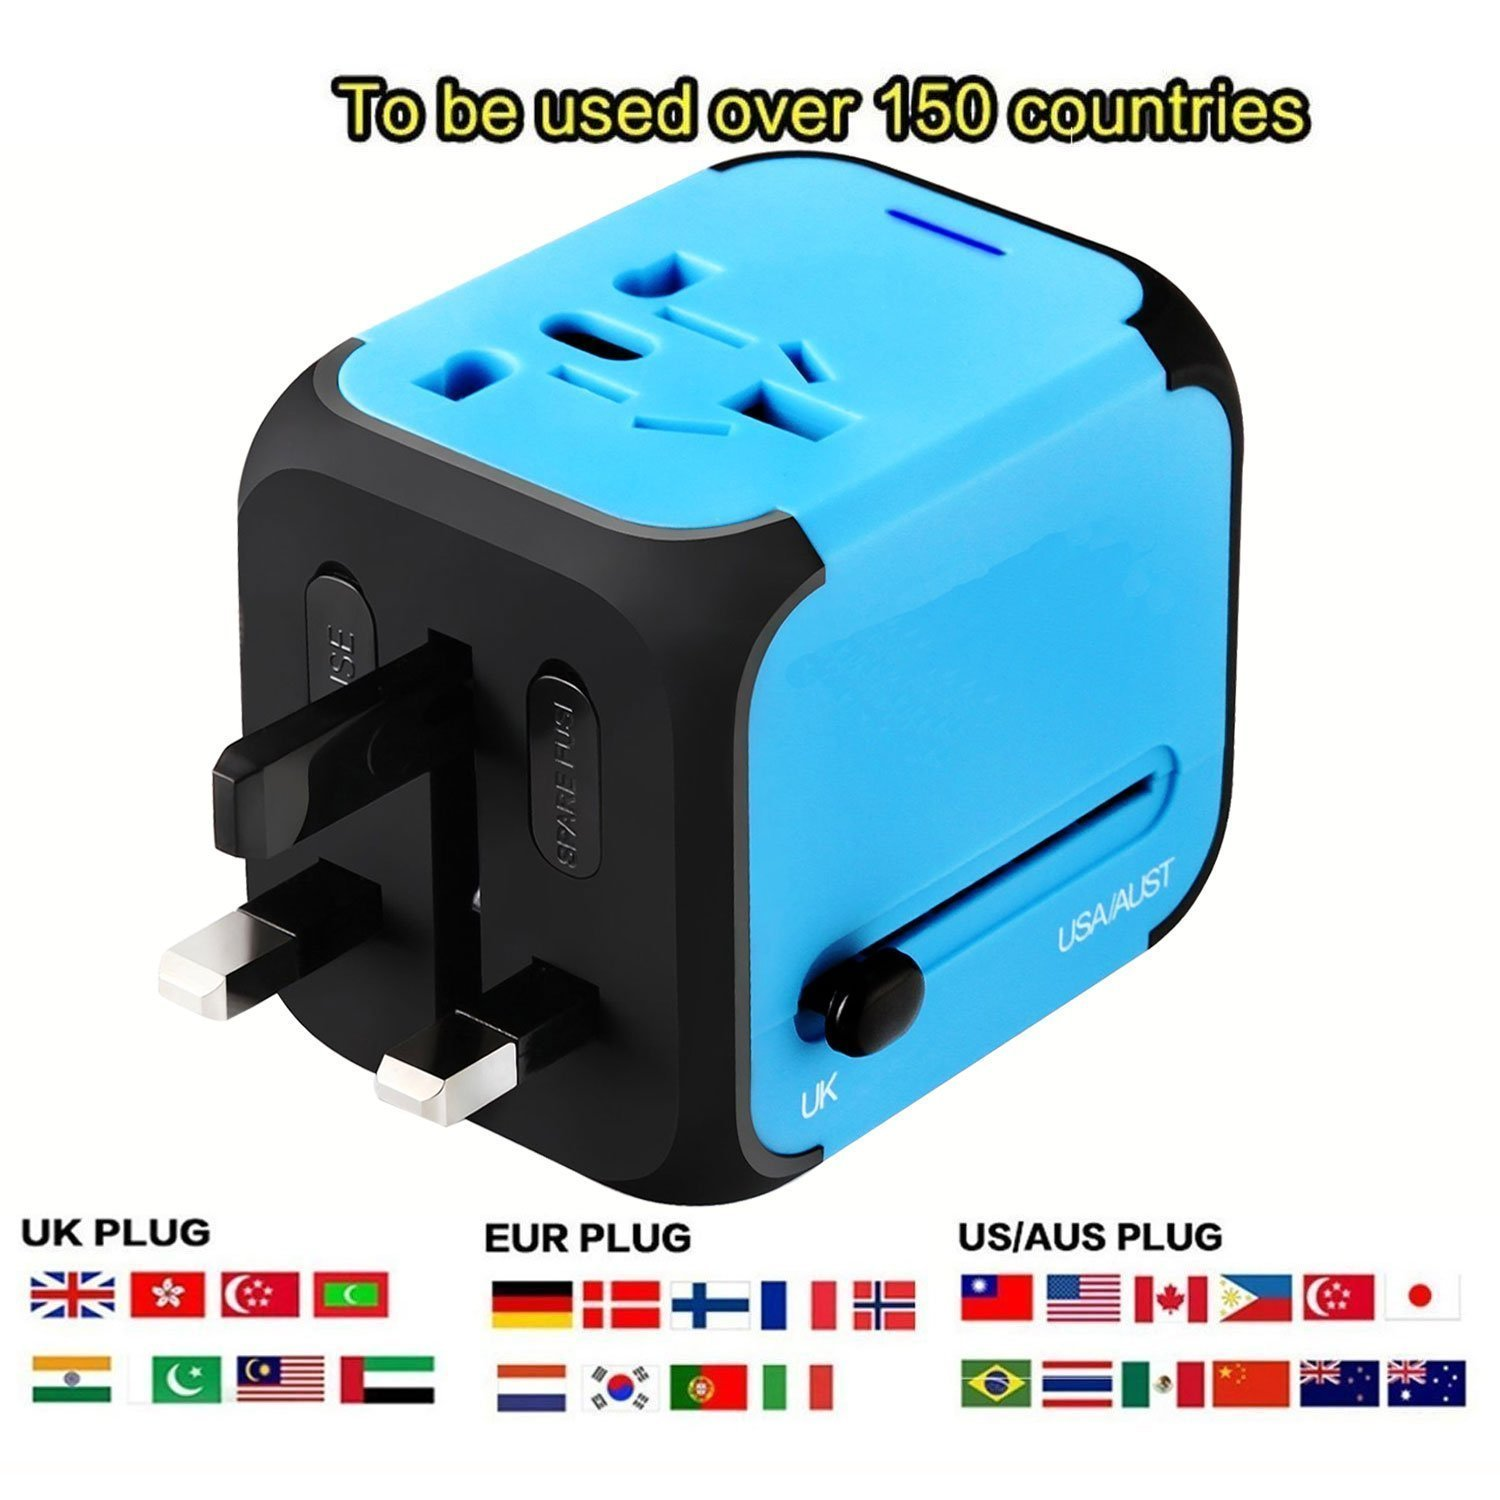 Universal Travel Adapter, International Power Adapter with 2.4A Dual USB Ports Worldwide AC Wall Outlet for Europe, UK, AU, Asia & US(Blue)